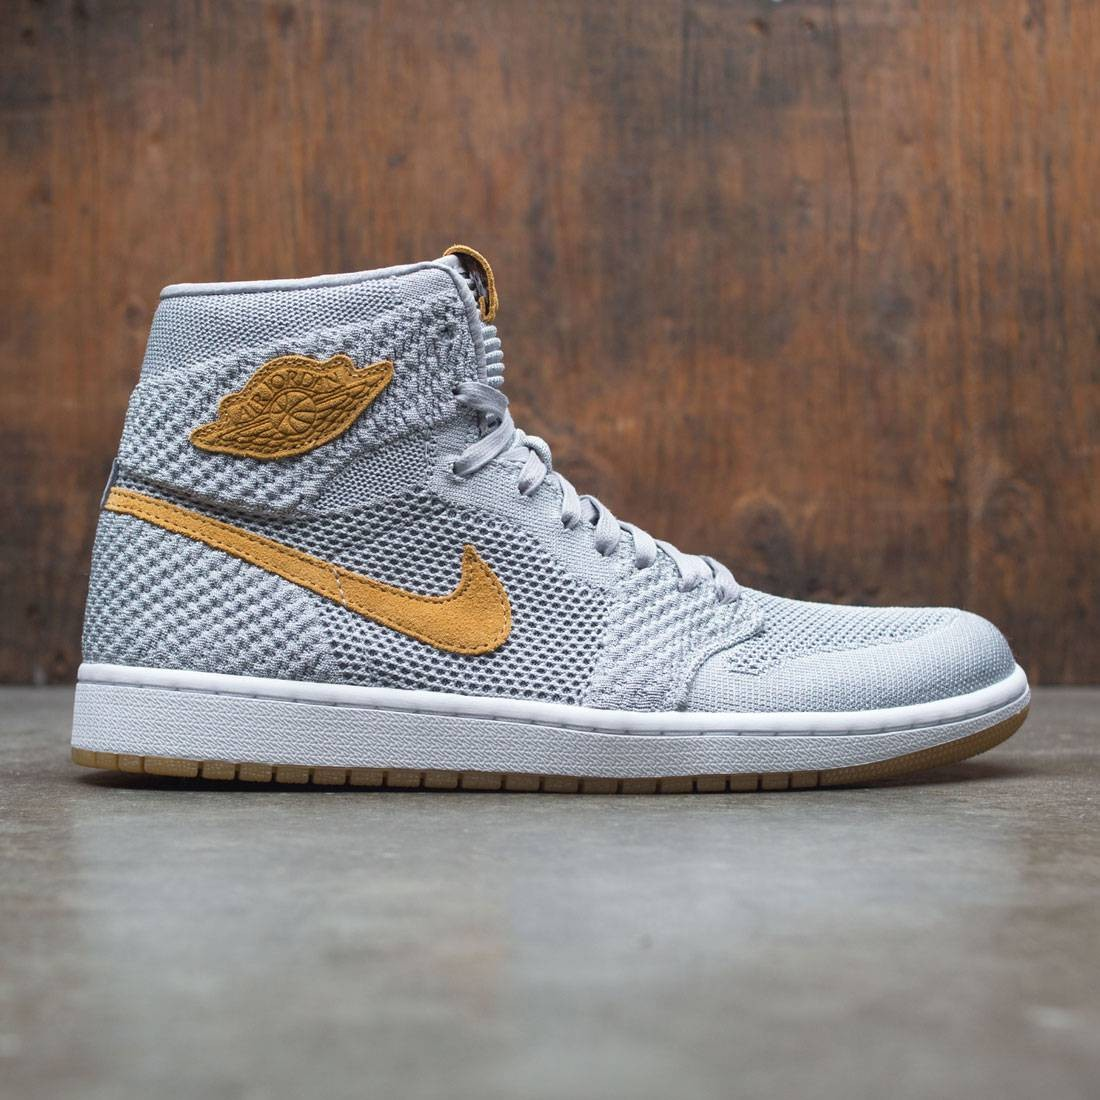 d74d74f8ed14 jordan men air jordan 1 retro high flyknit grey wolf grey golden harvest  gum yellow